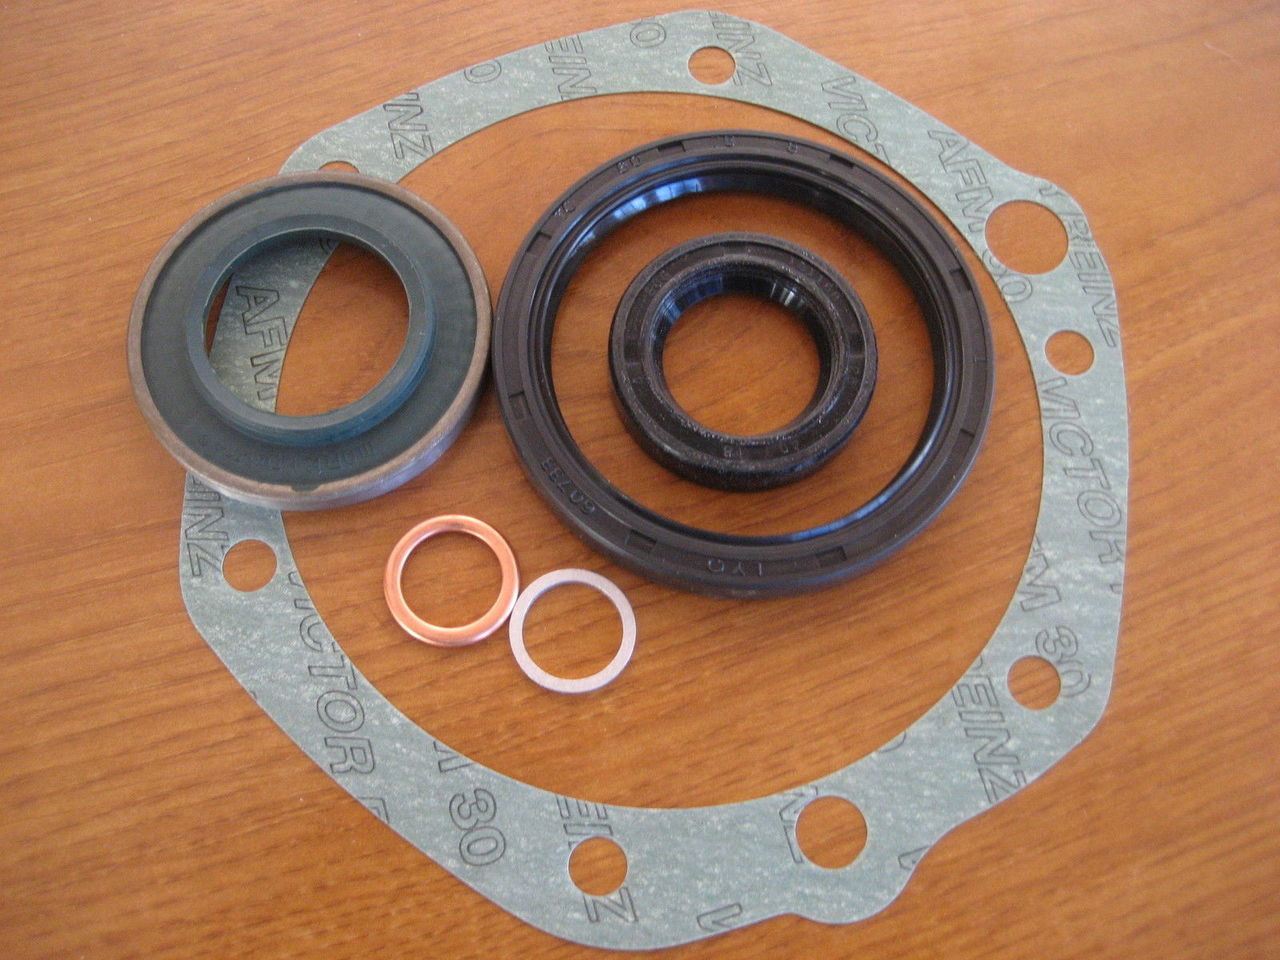 BMW R26-R27 REAR DRIVE GASKET SET COMPLETE SET WITH ALL SEALS NEW SET - 33 11 0 000 002